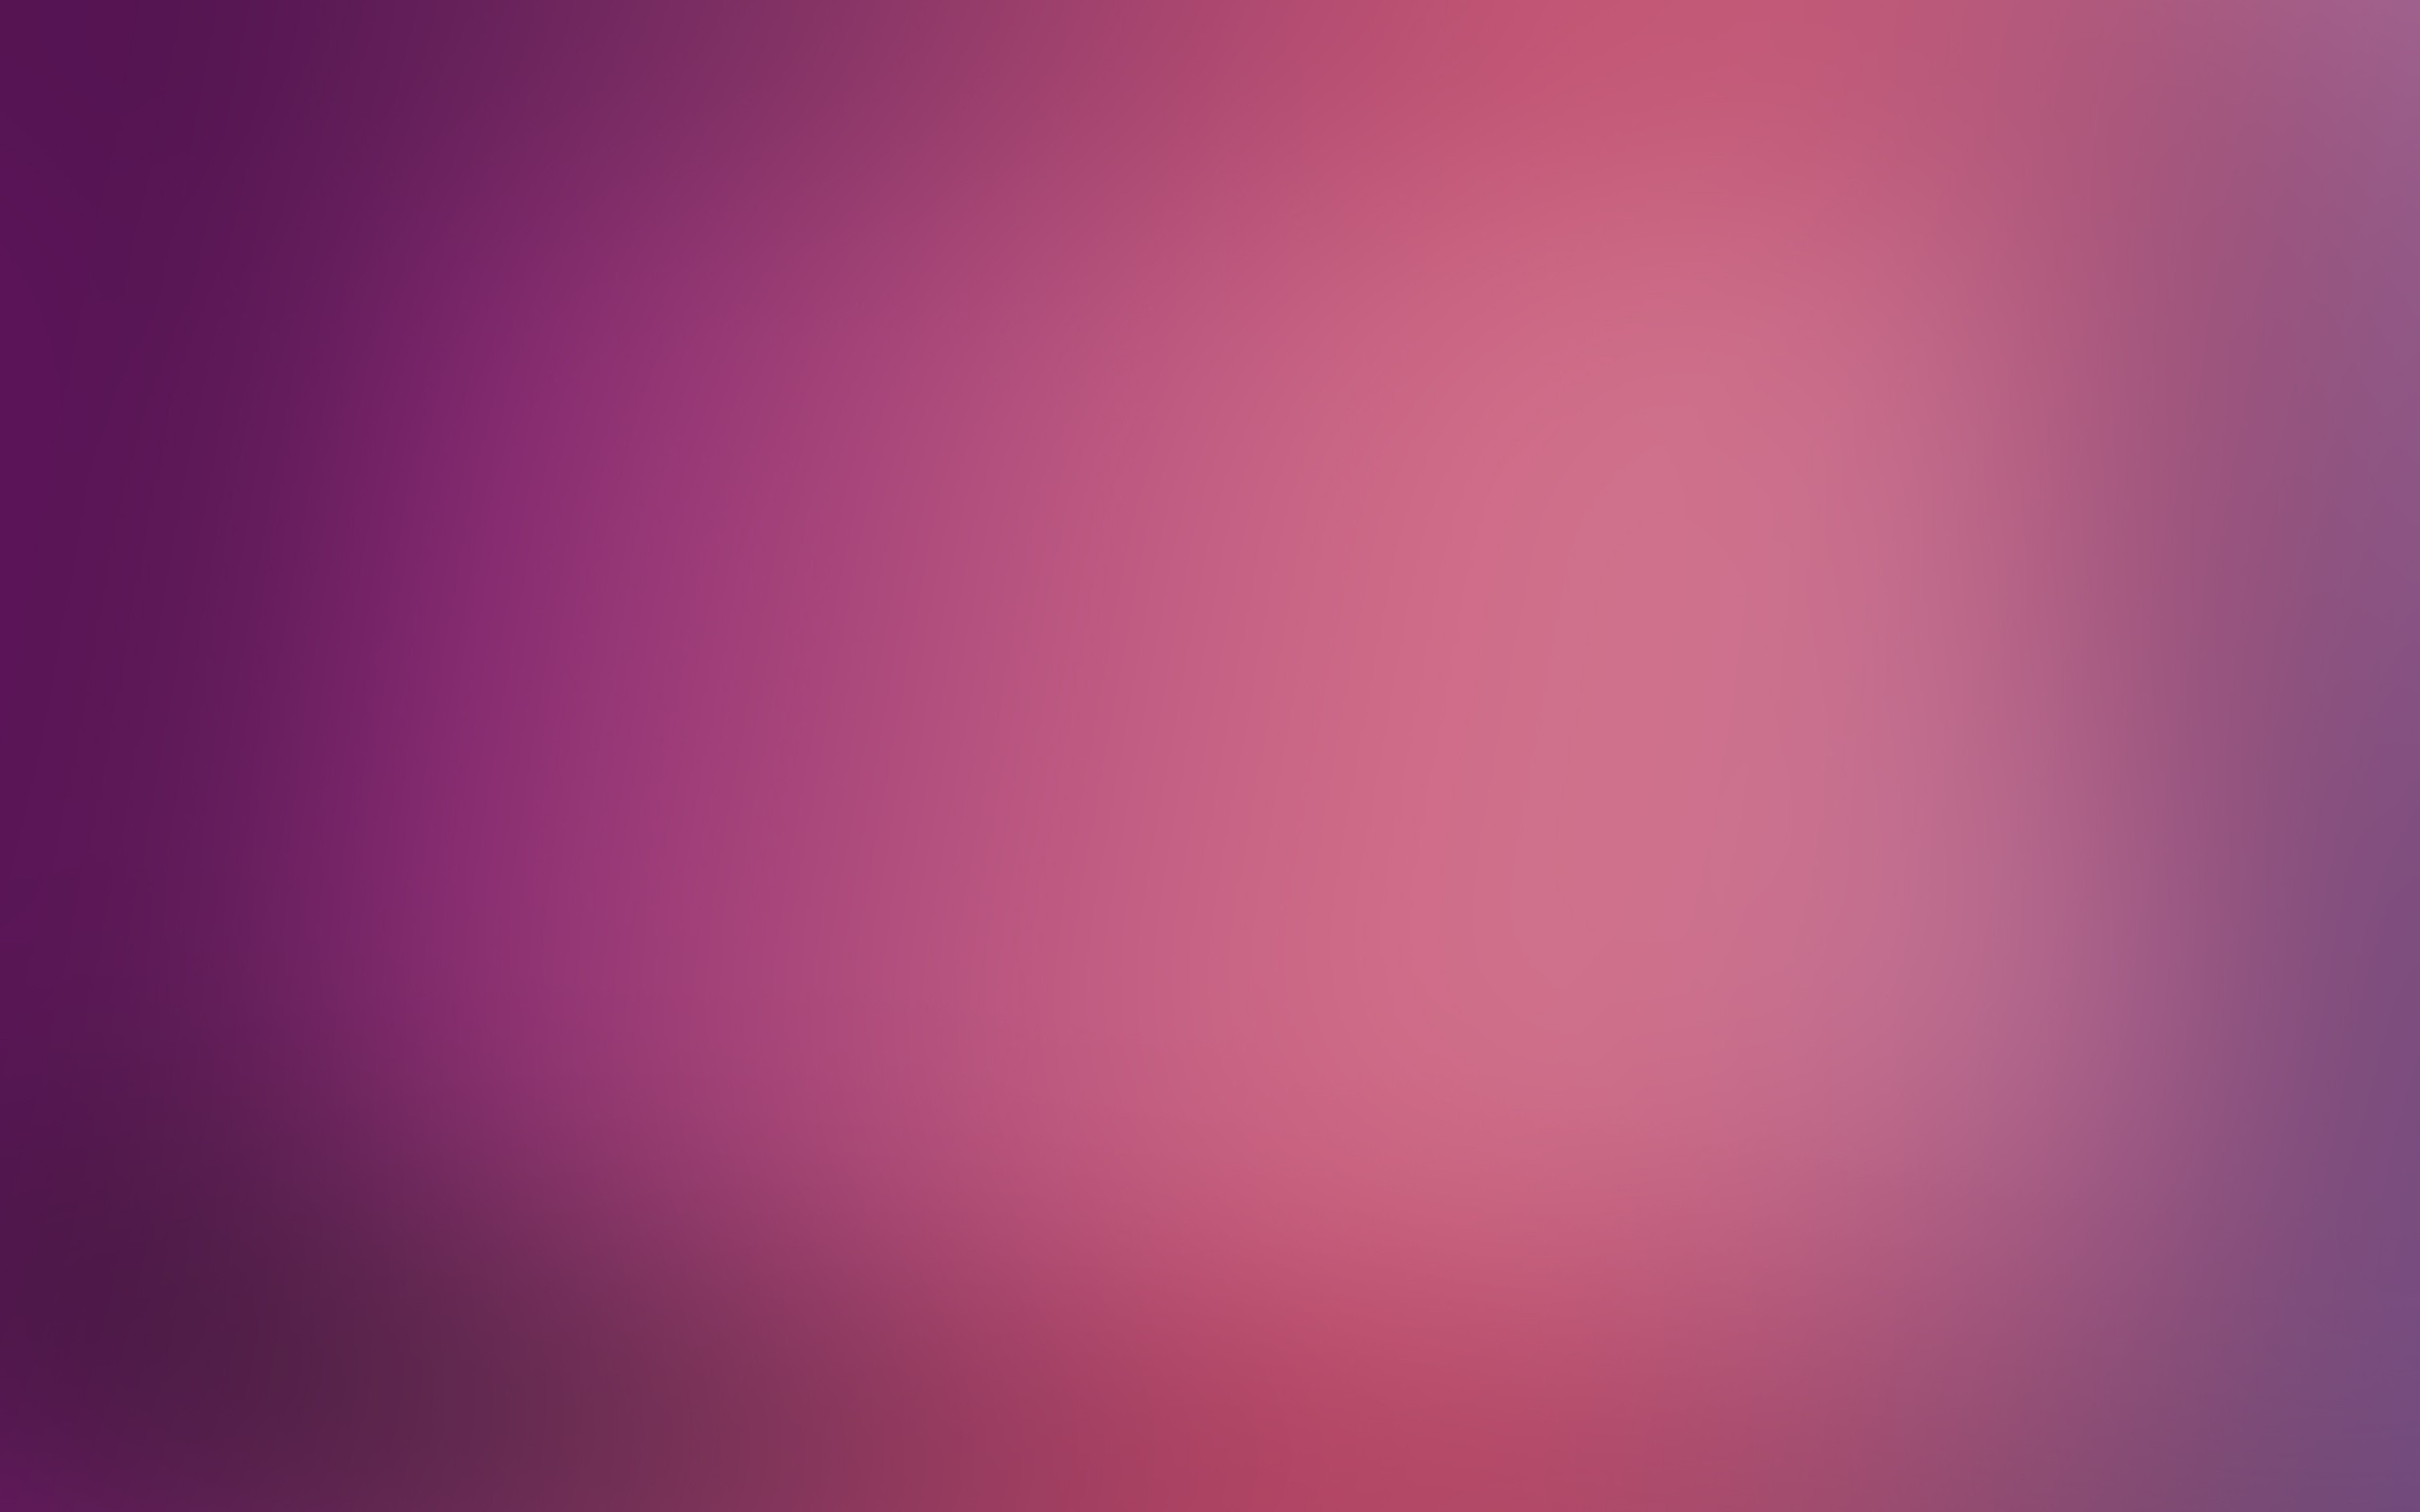 Free stock images with the color Pink ff00ff